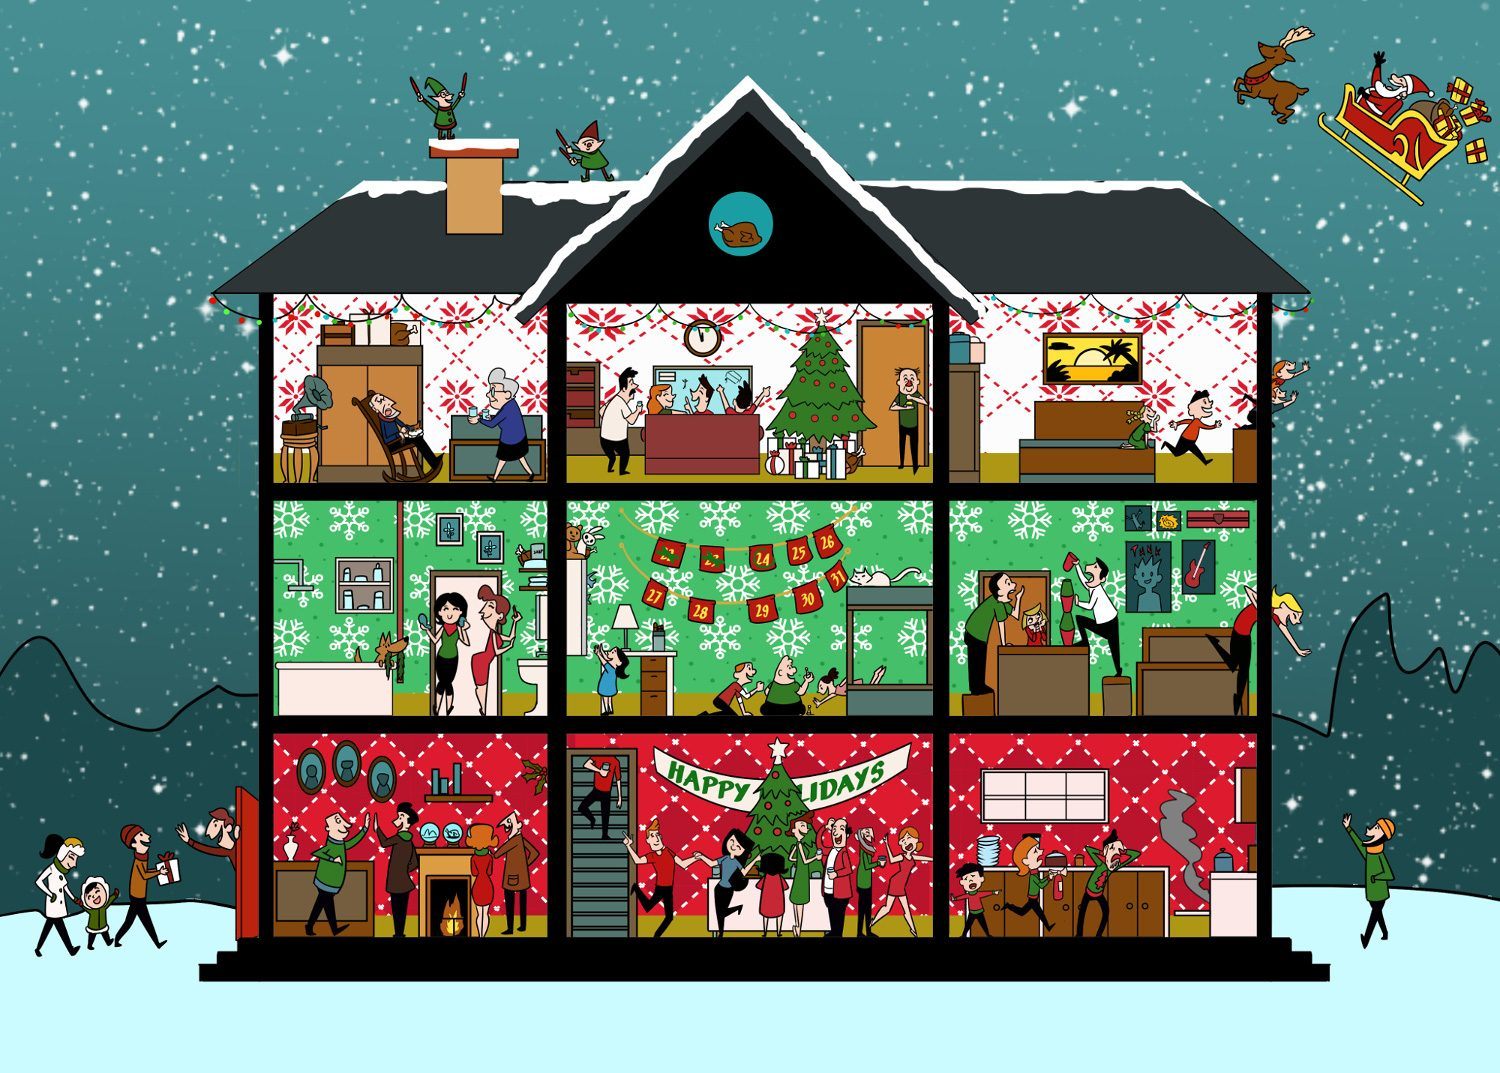 Can You Find All The Turkeys In This Christmas Scene